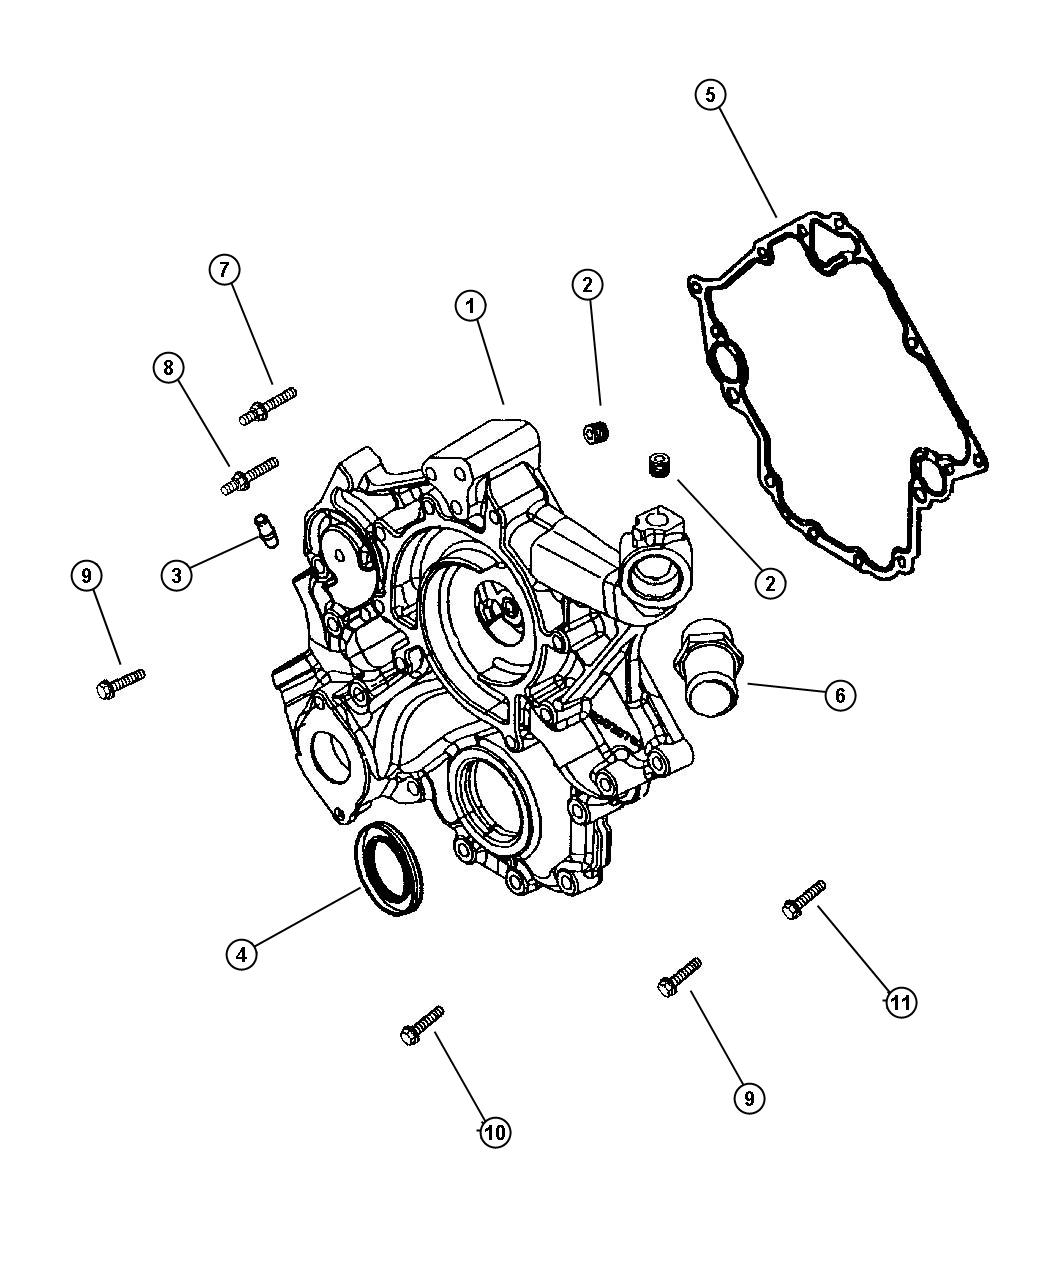 Jeep Grand Cherokee Used For Screw And Washer Hex Hex